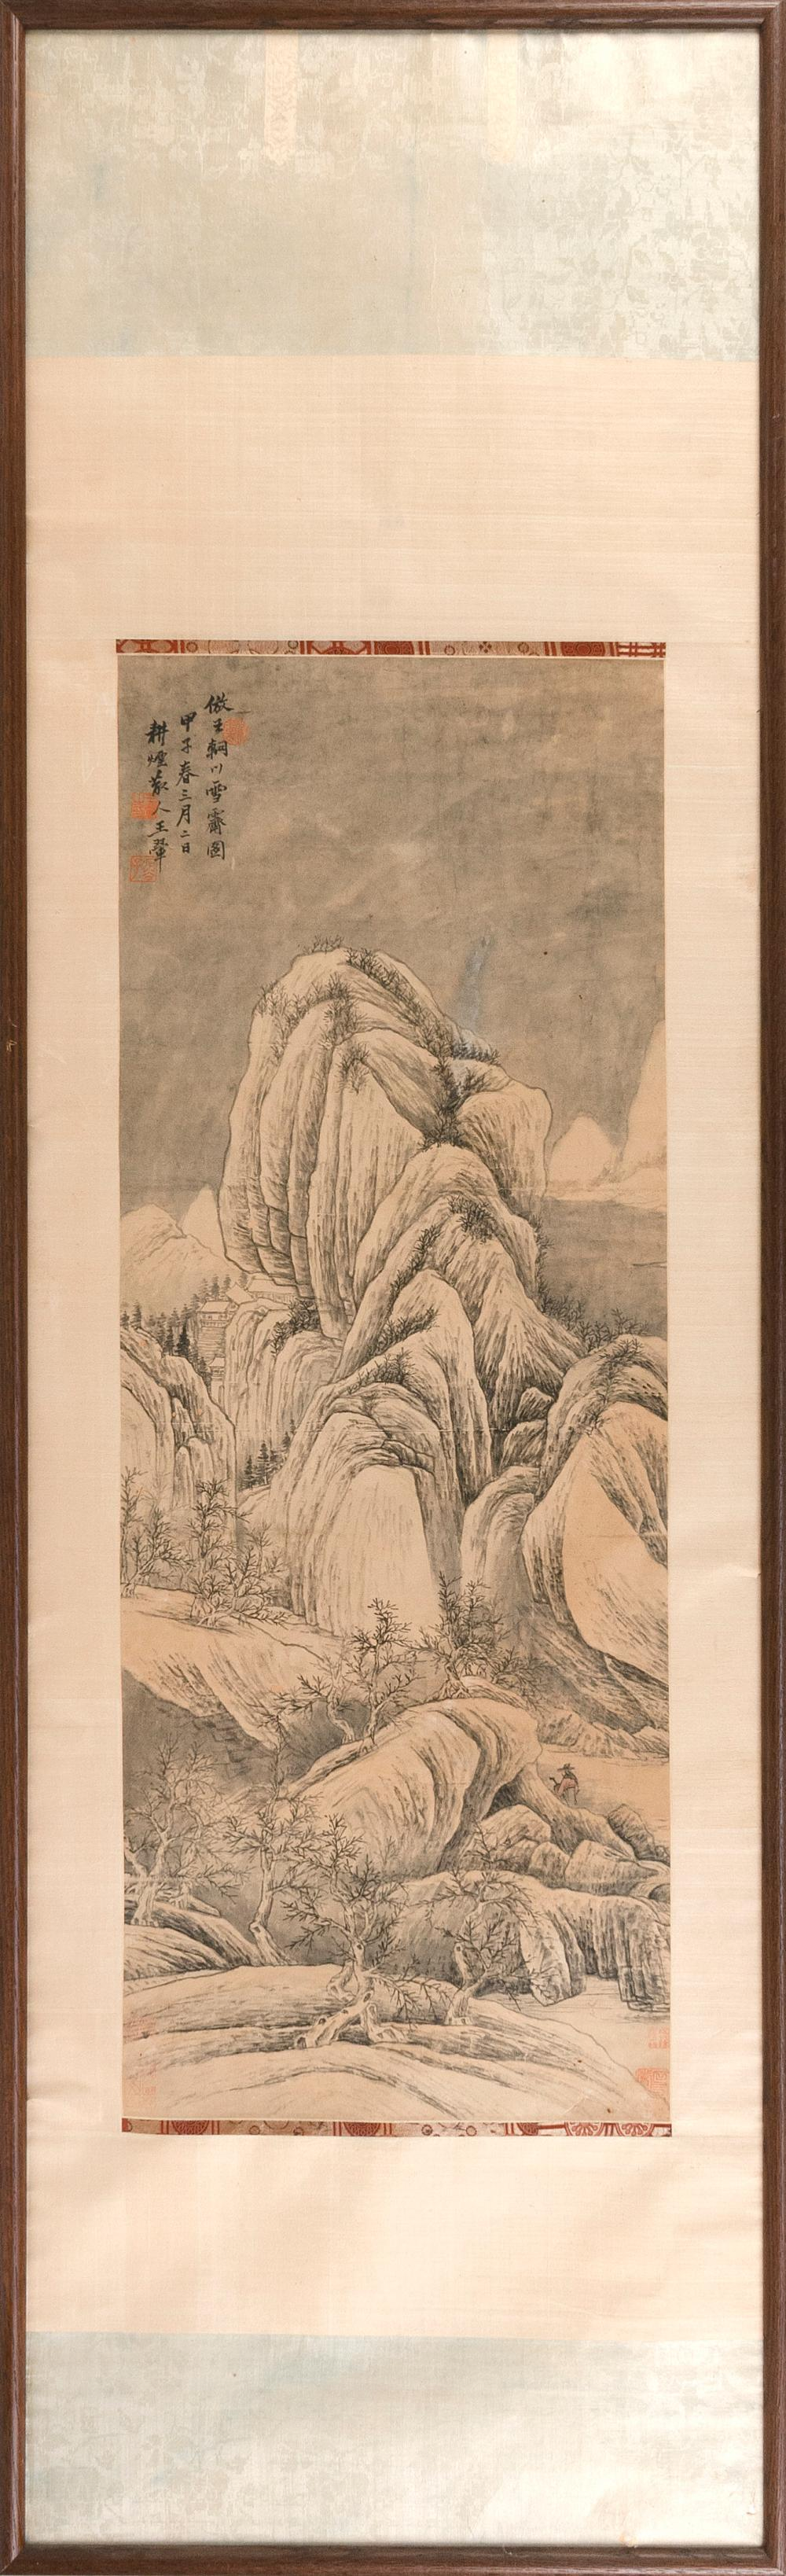 "CHINESE PAINTING ON PAPER After Wang Wei. Depicting a traveler in a mountain landscape. Signed ""Wang Wei"" and marked with seven seal..."